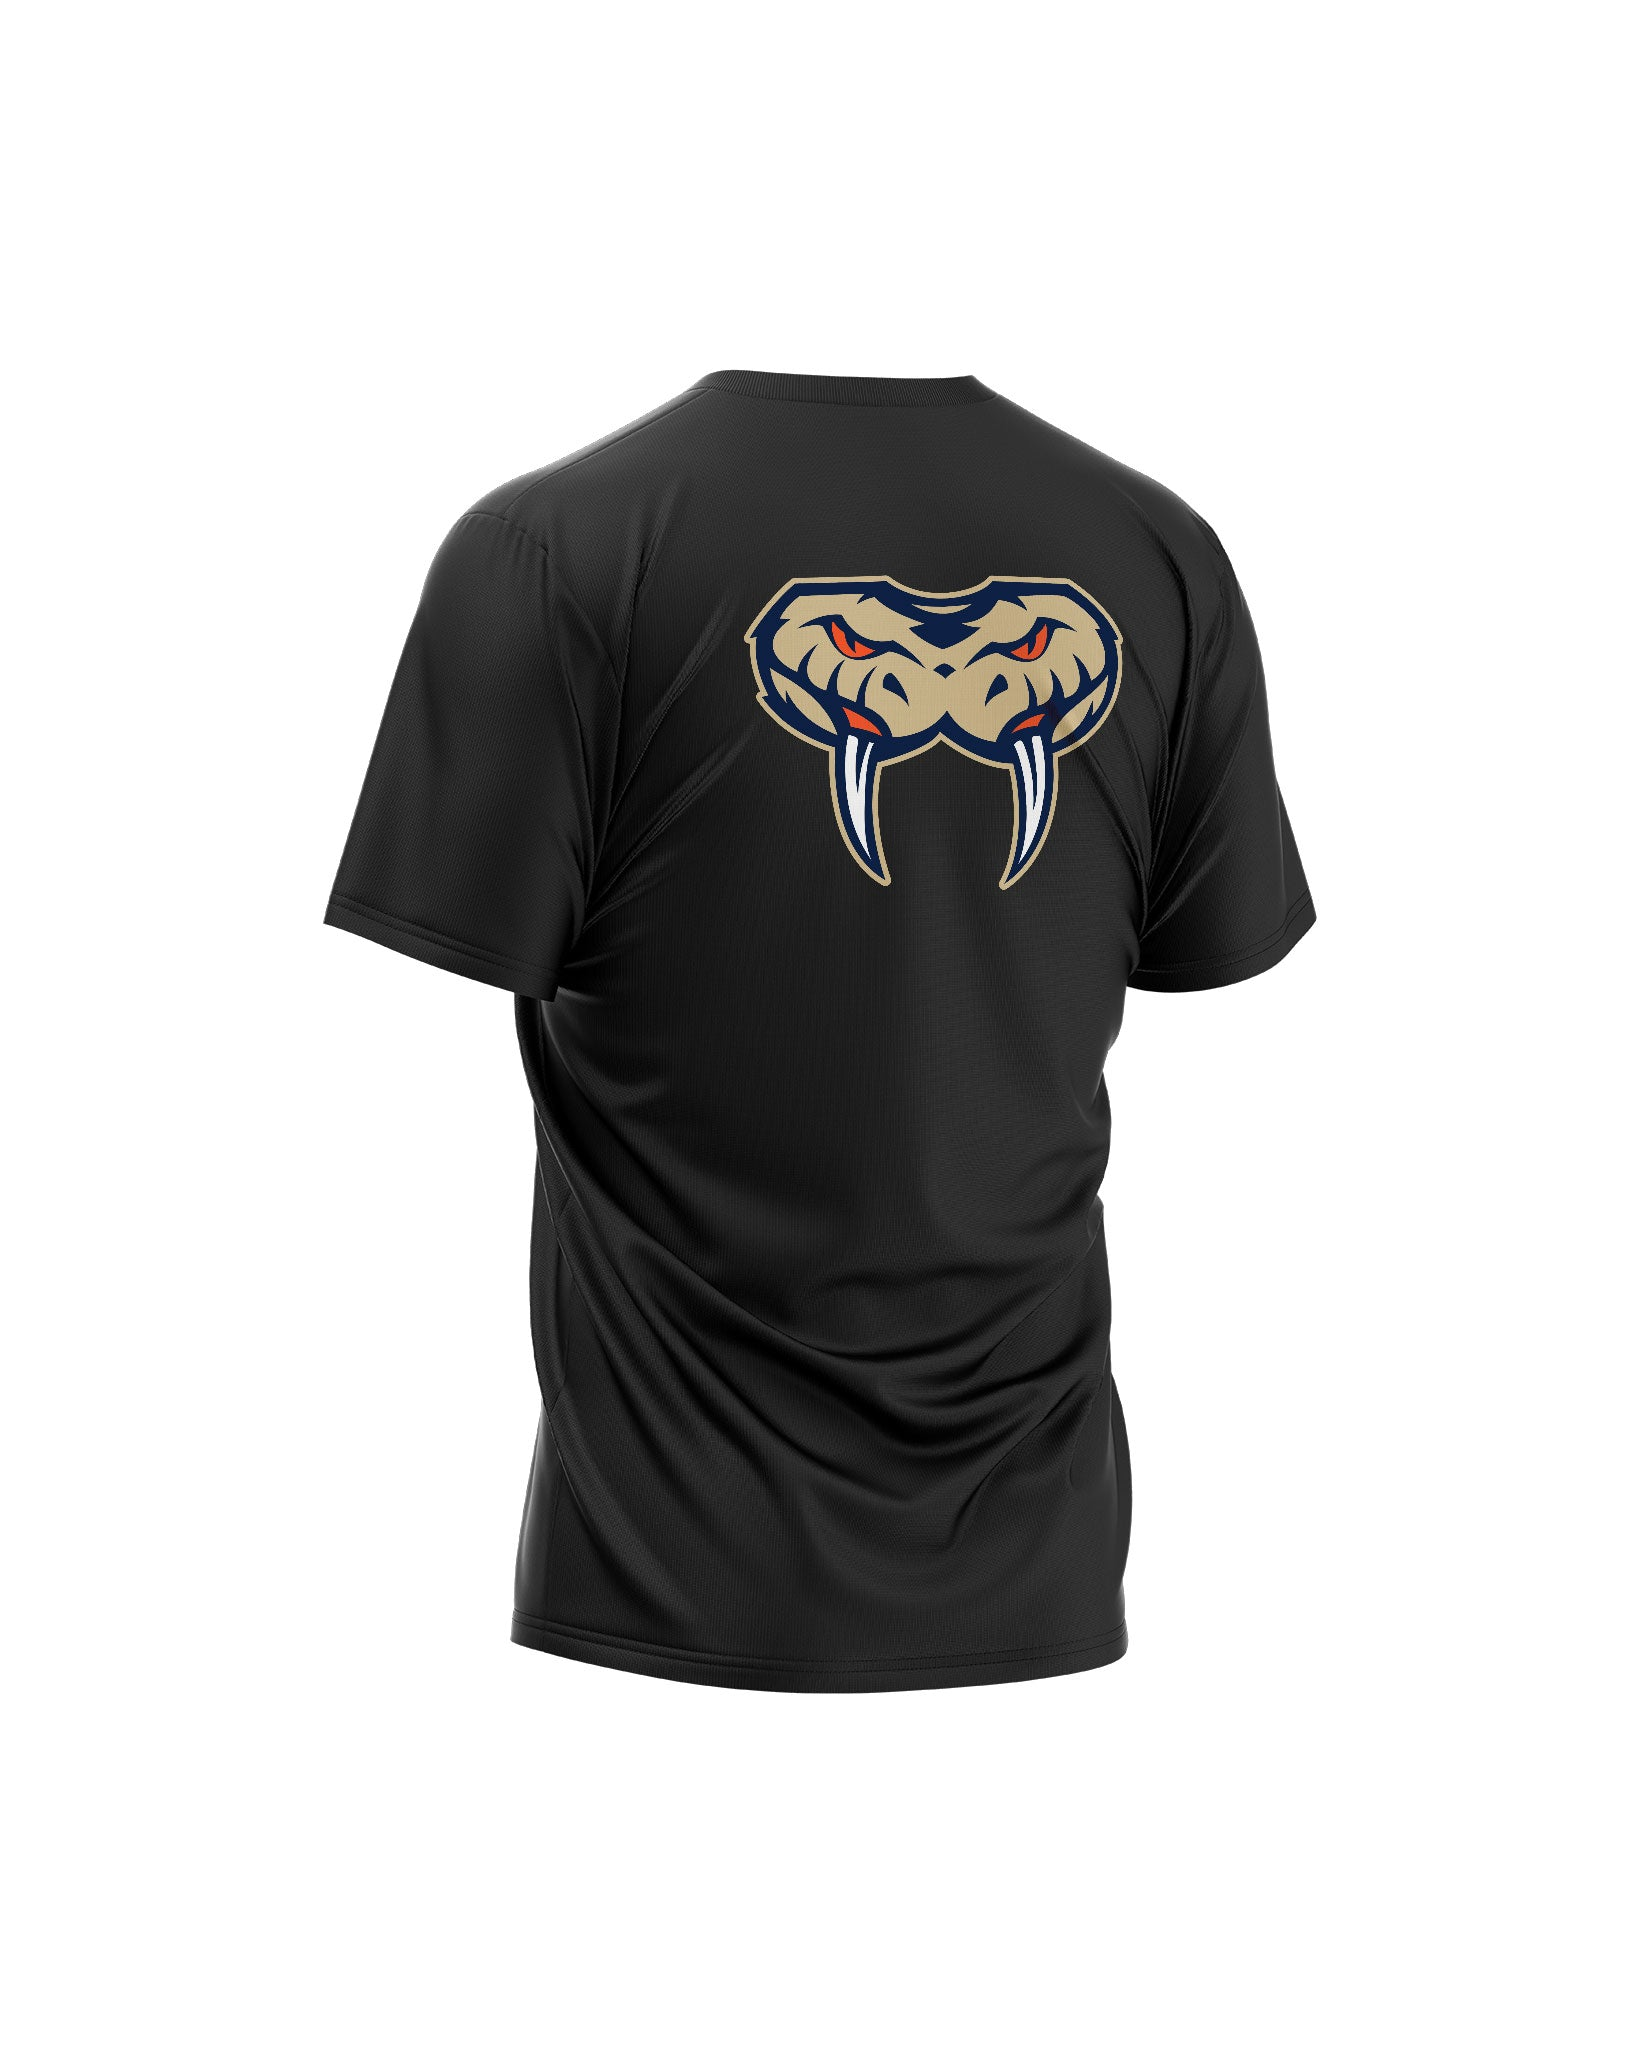 Cairns Taipans 20/21 Club Tshirt Black